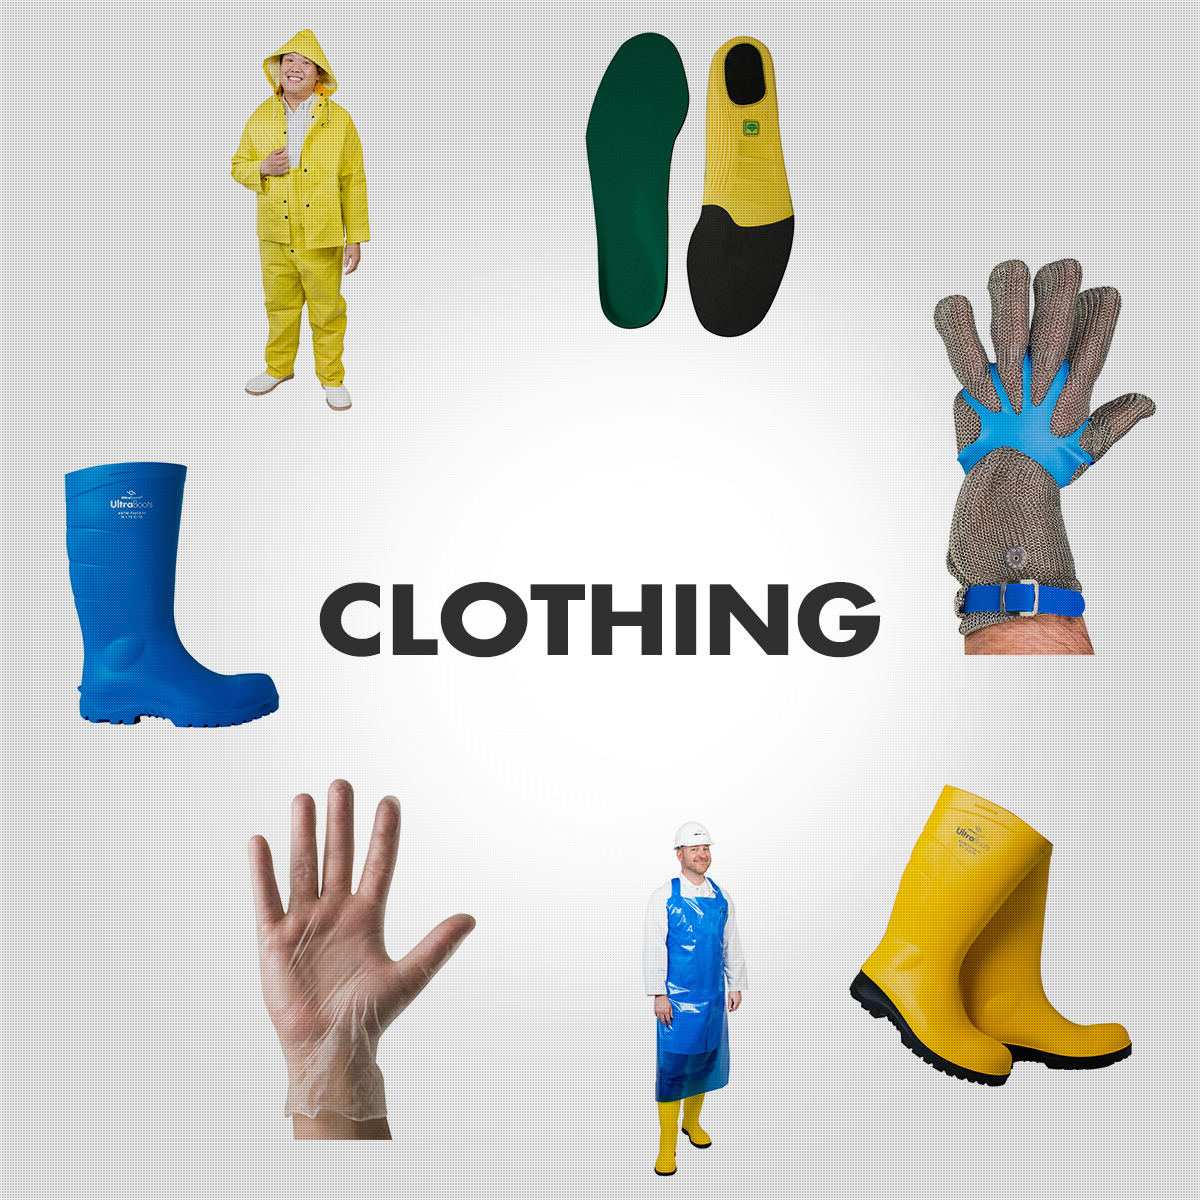 Clothing - Industrial Boots, Gloves, Aprons, Gowns, Etc.